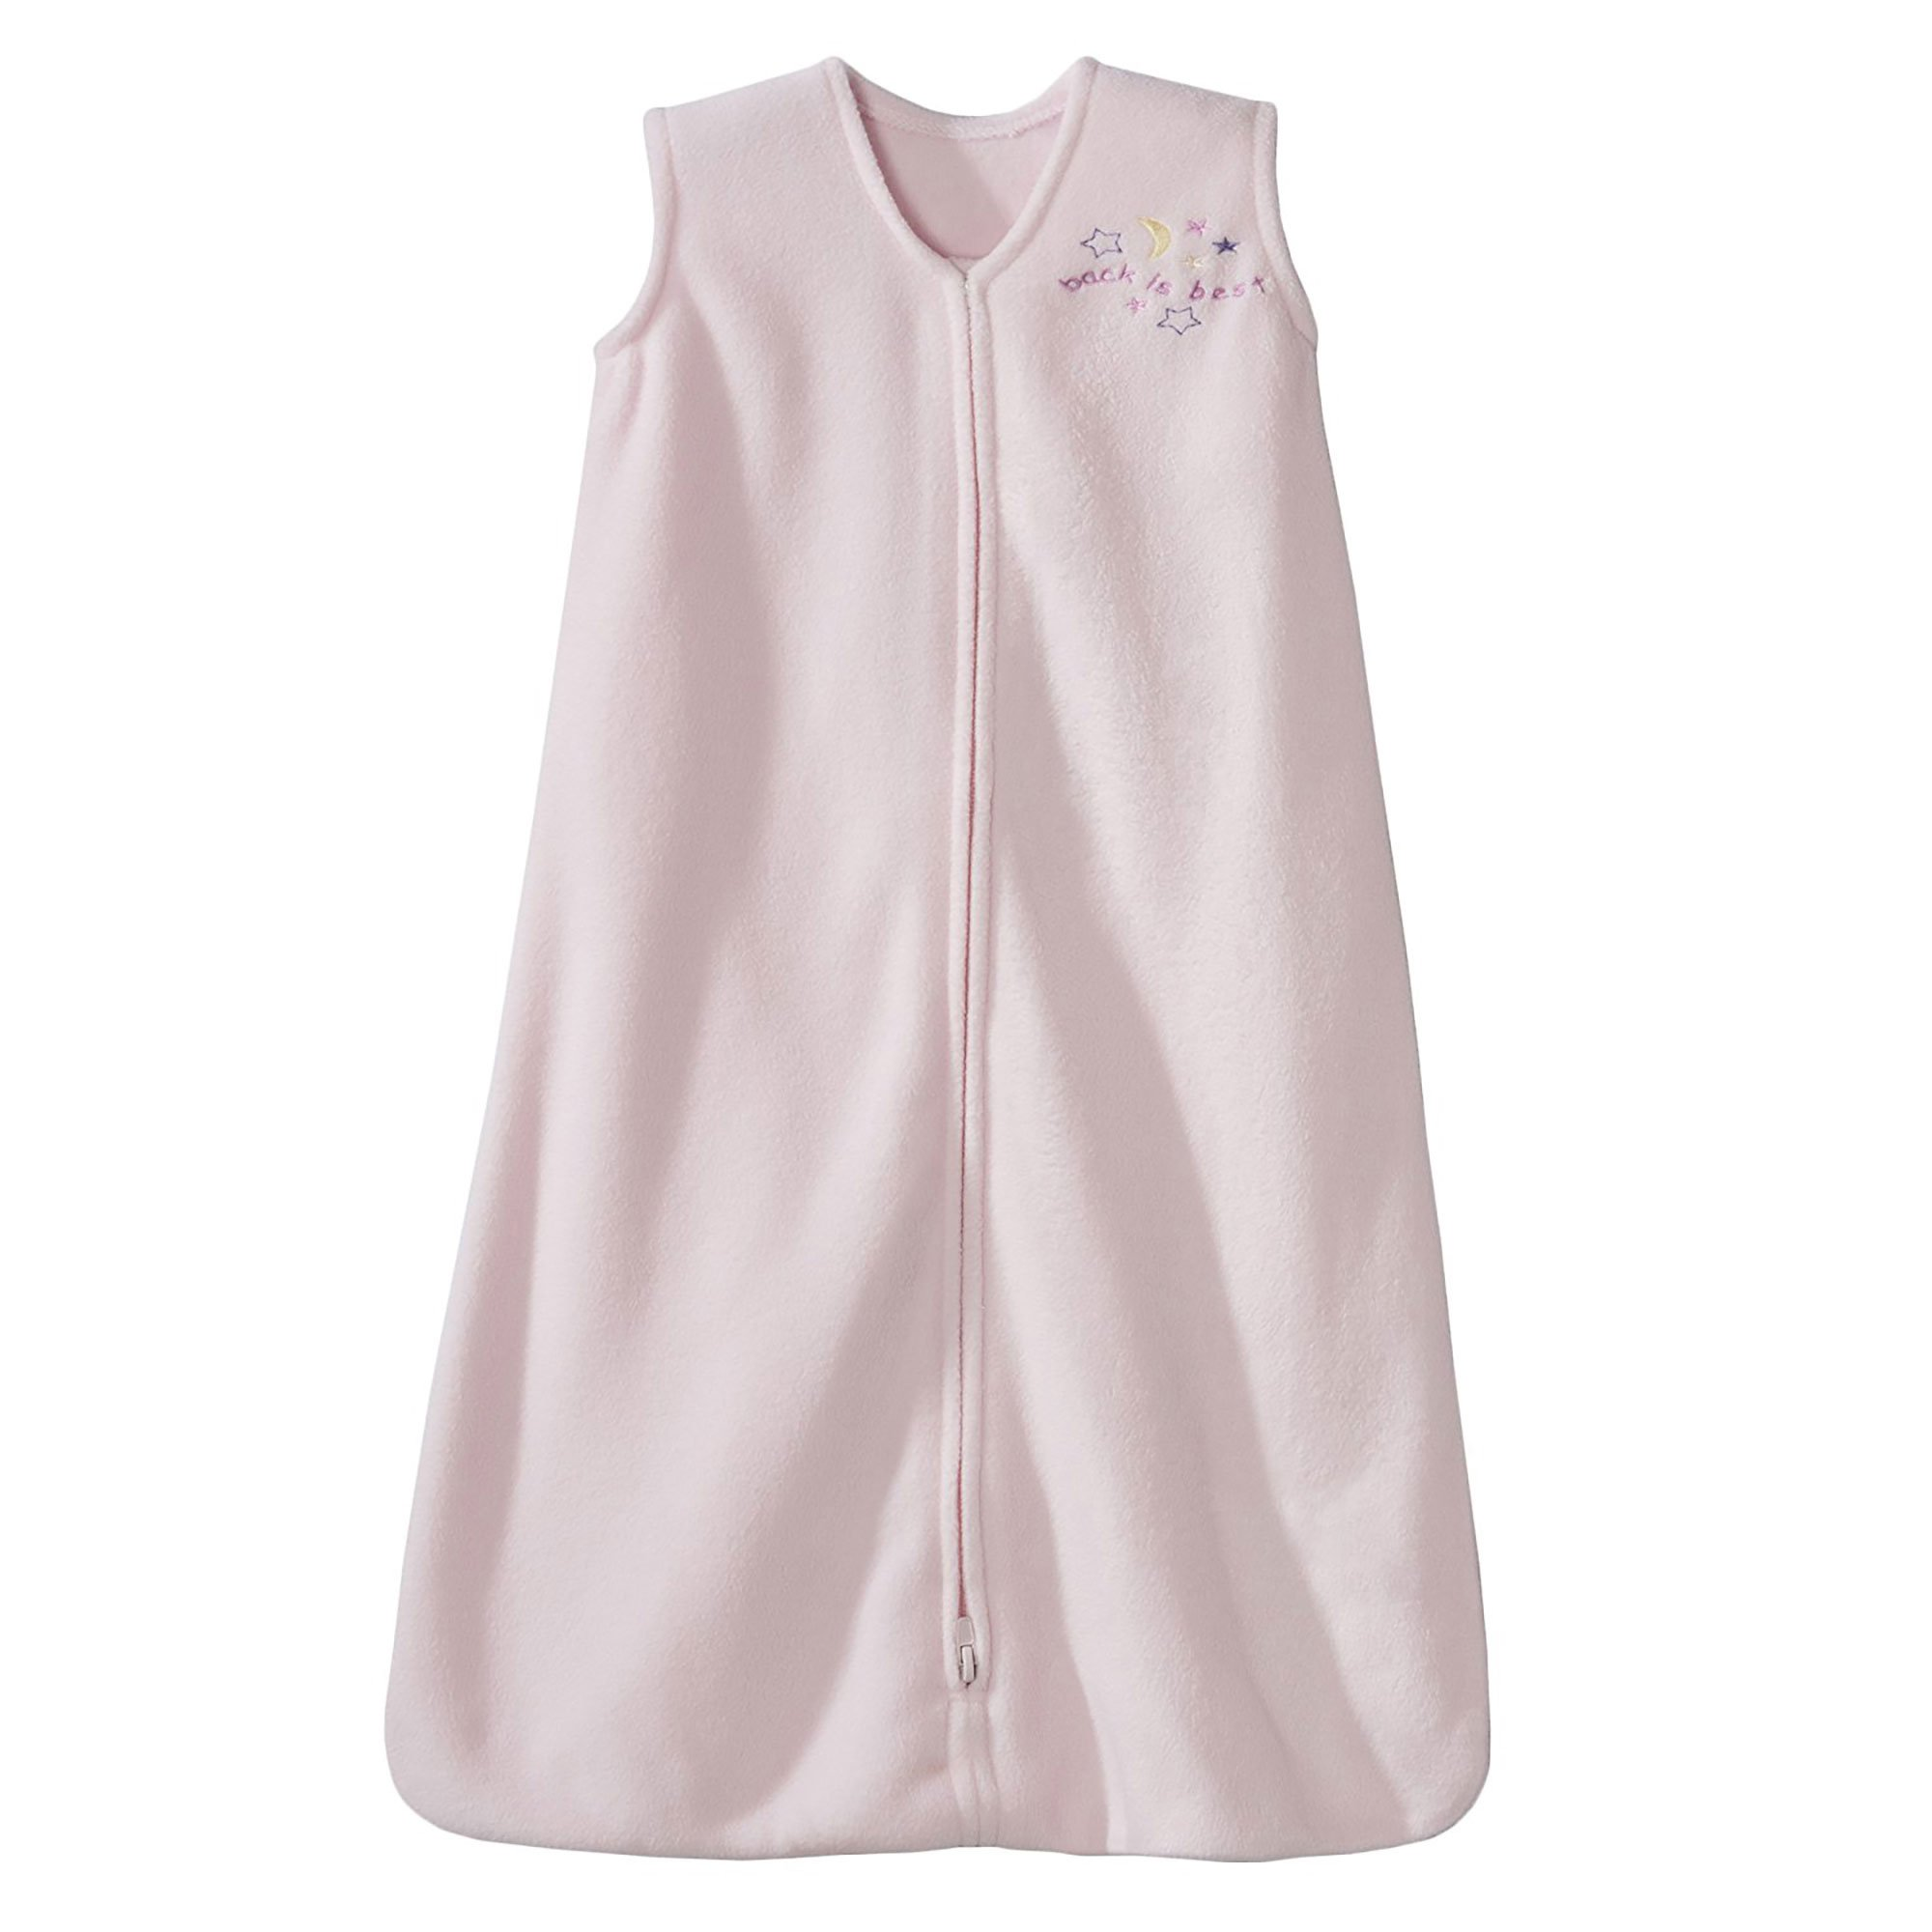 HALO SleepSack Micro-Fleece Wearable Blanket, Soft Pink, Medium by Halo